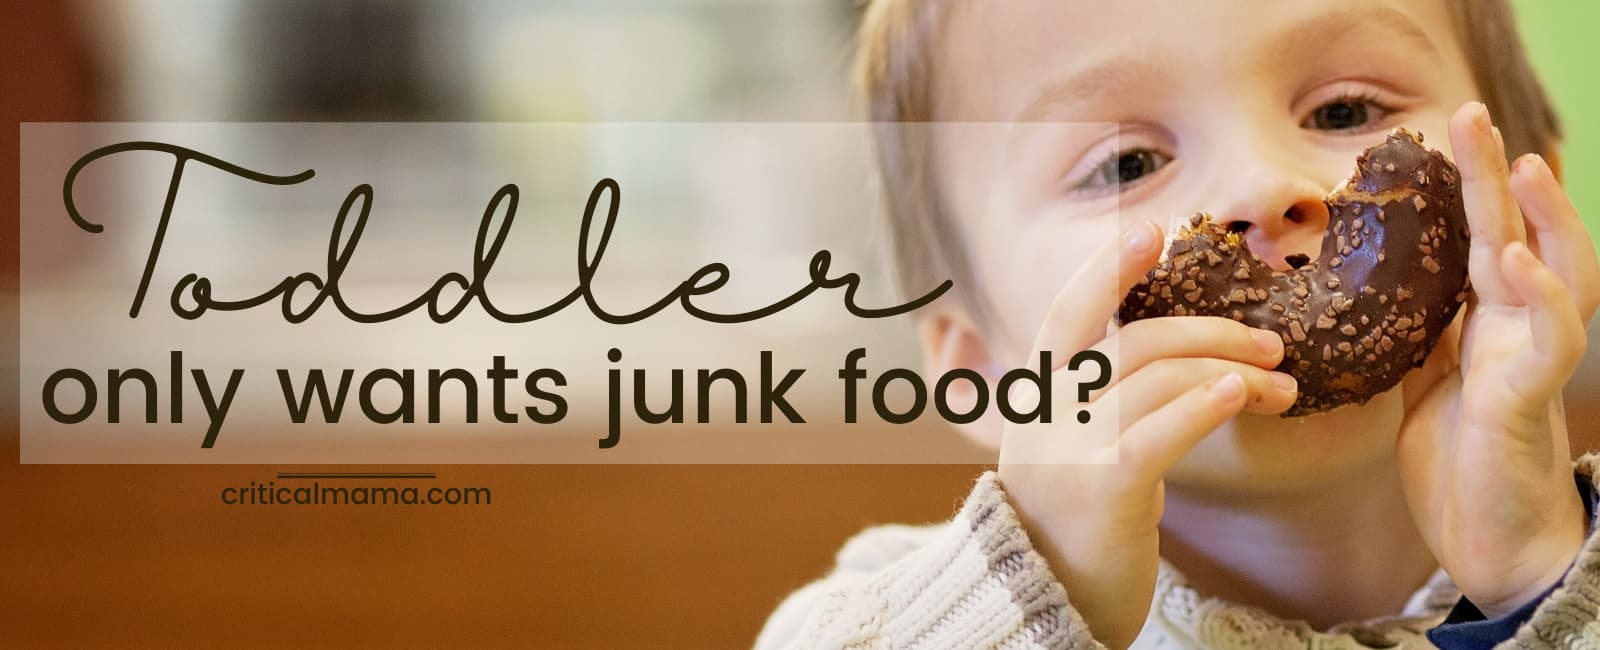 Toddler eating a donut, text reads toddler only wants junk food?